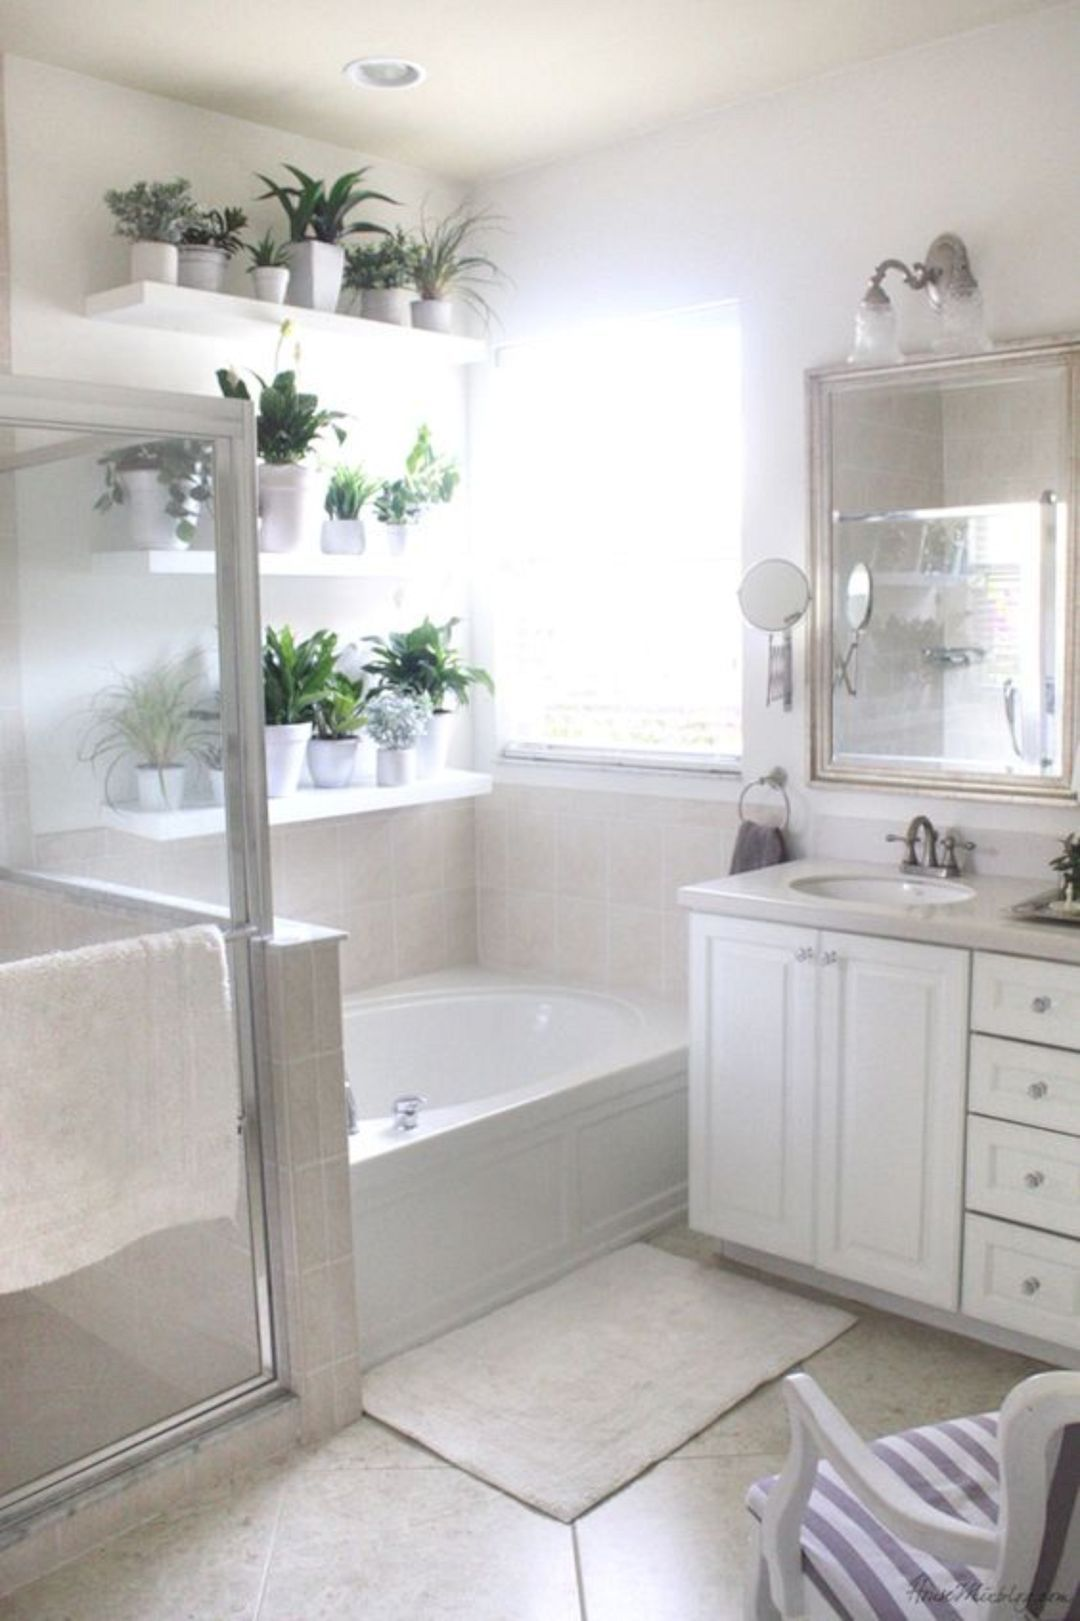 15 Bathroom Decorating Ideas You Can Have At Home Bathroom Plants Decor Bathroom Decor Bathroom Design